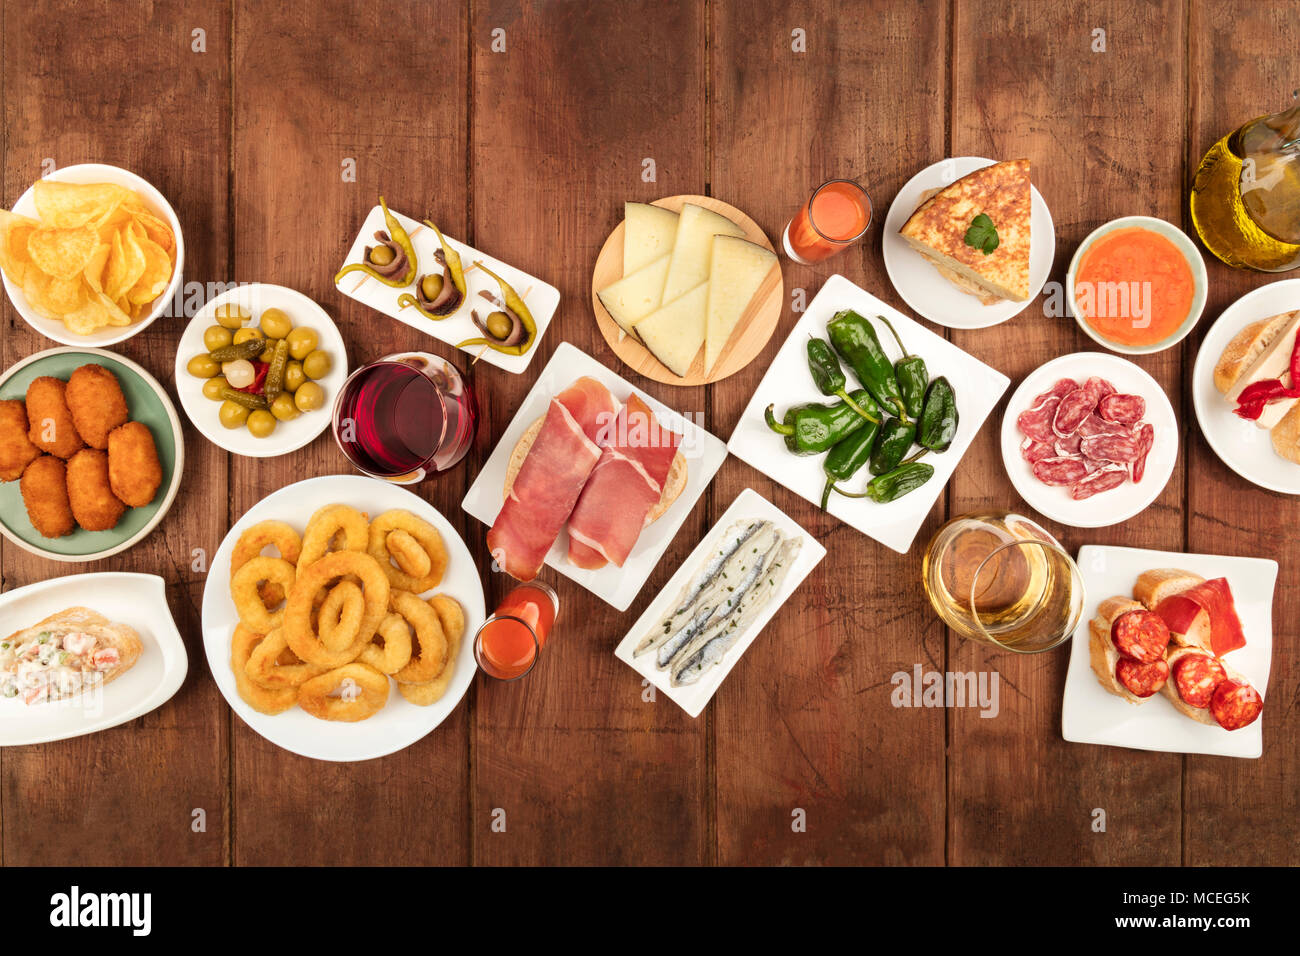 An overhead photo of an assortment of Spanish tapas food, shot from the top on a dark rustic background with a place for text. Jamon, gazpacho, cheese - Stock Image